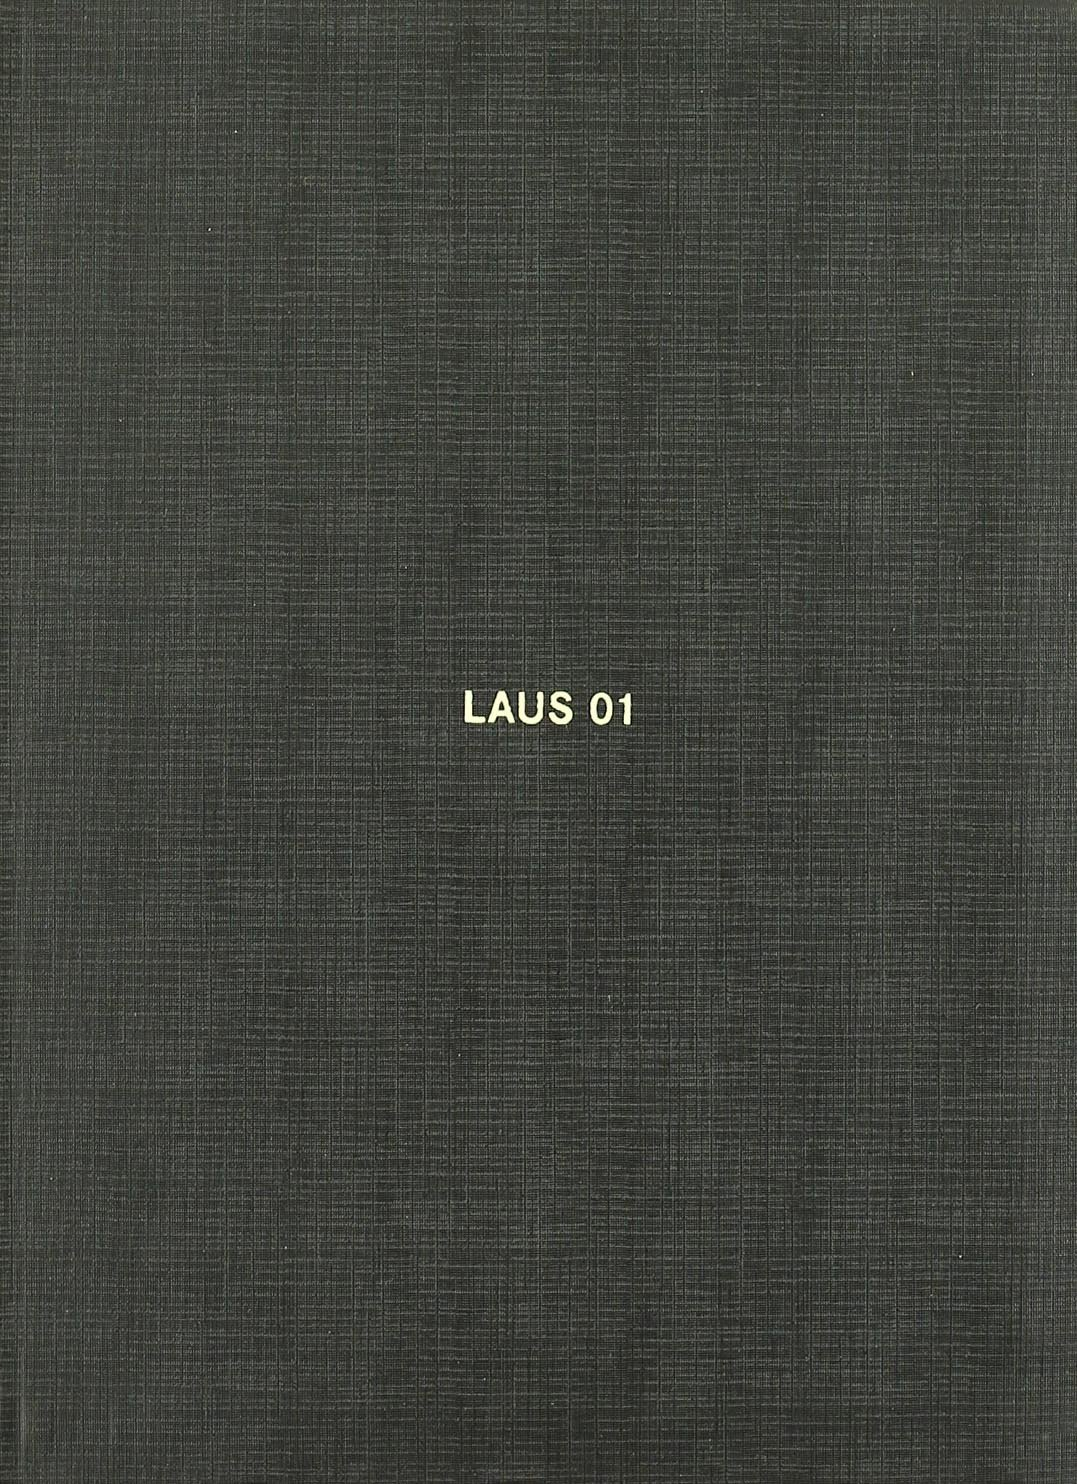 Laus 01: 31st Laus Awards. Best of Design and Advertising in 2001